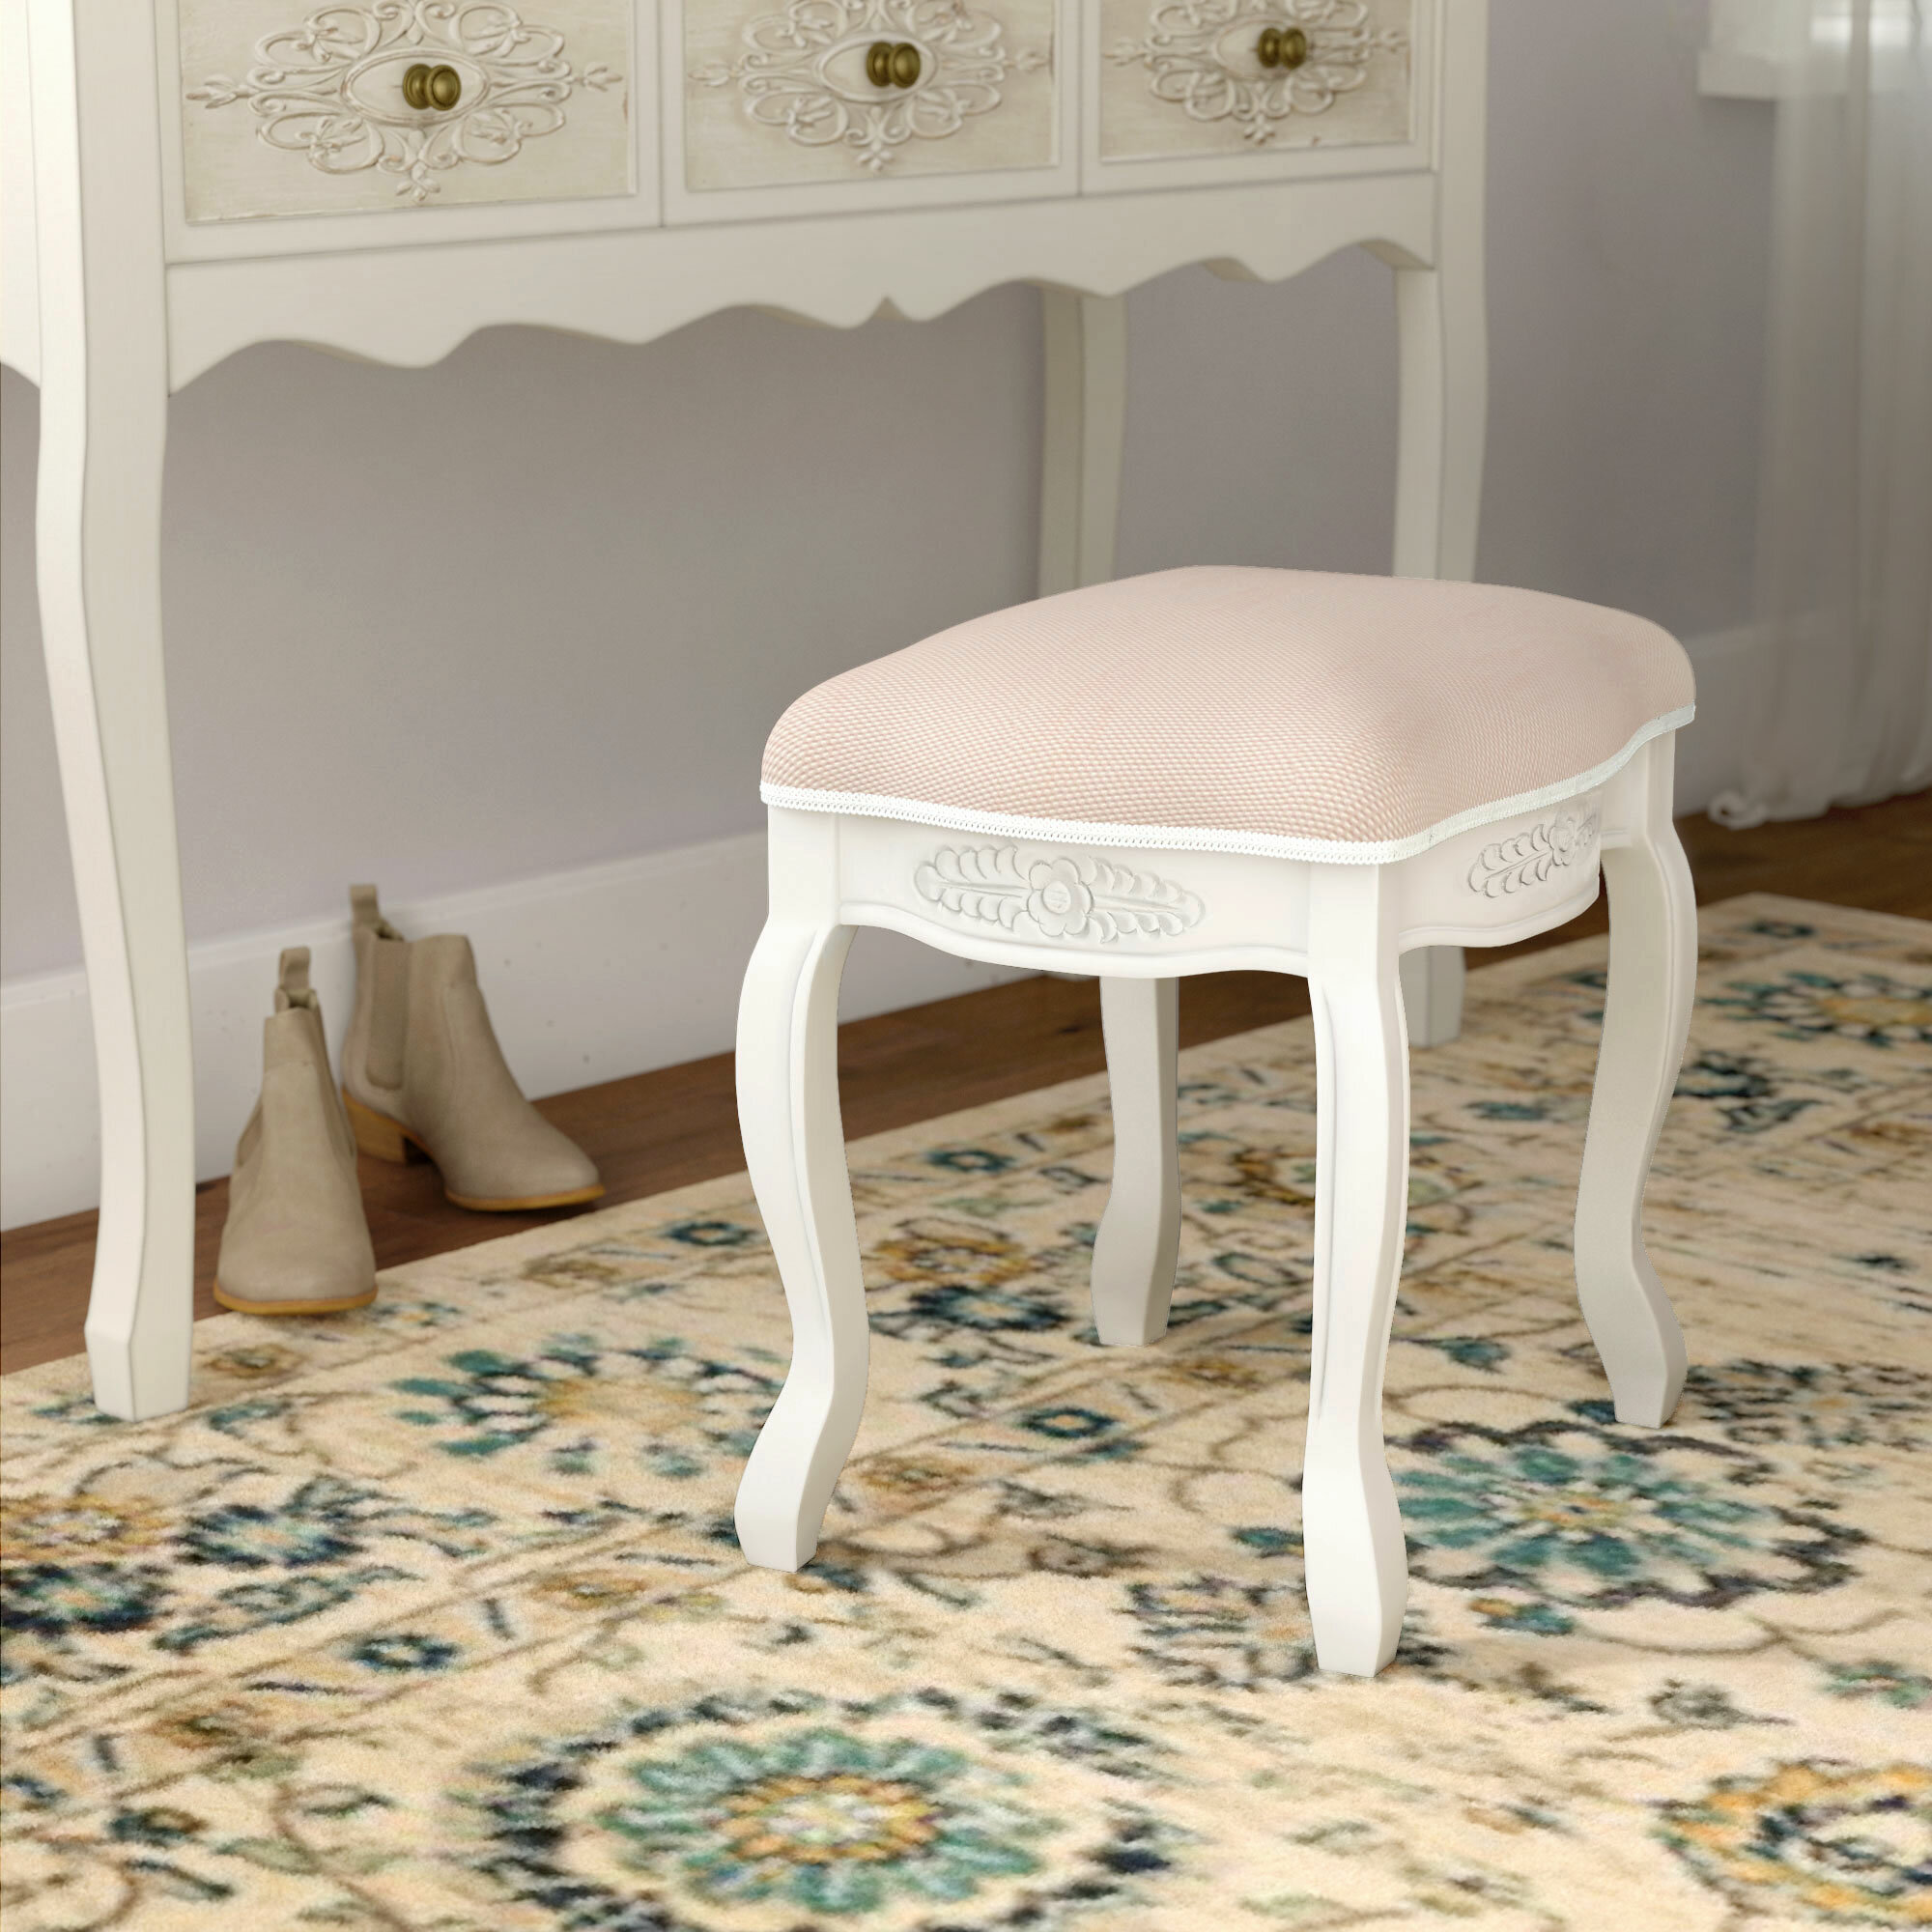 Surprising Adelinna Hand Carved Antique White Vanity Stool Alphanode Cool Chair Designs And Ideas Alphanodeonline